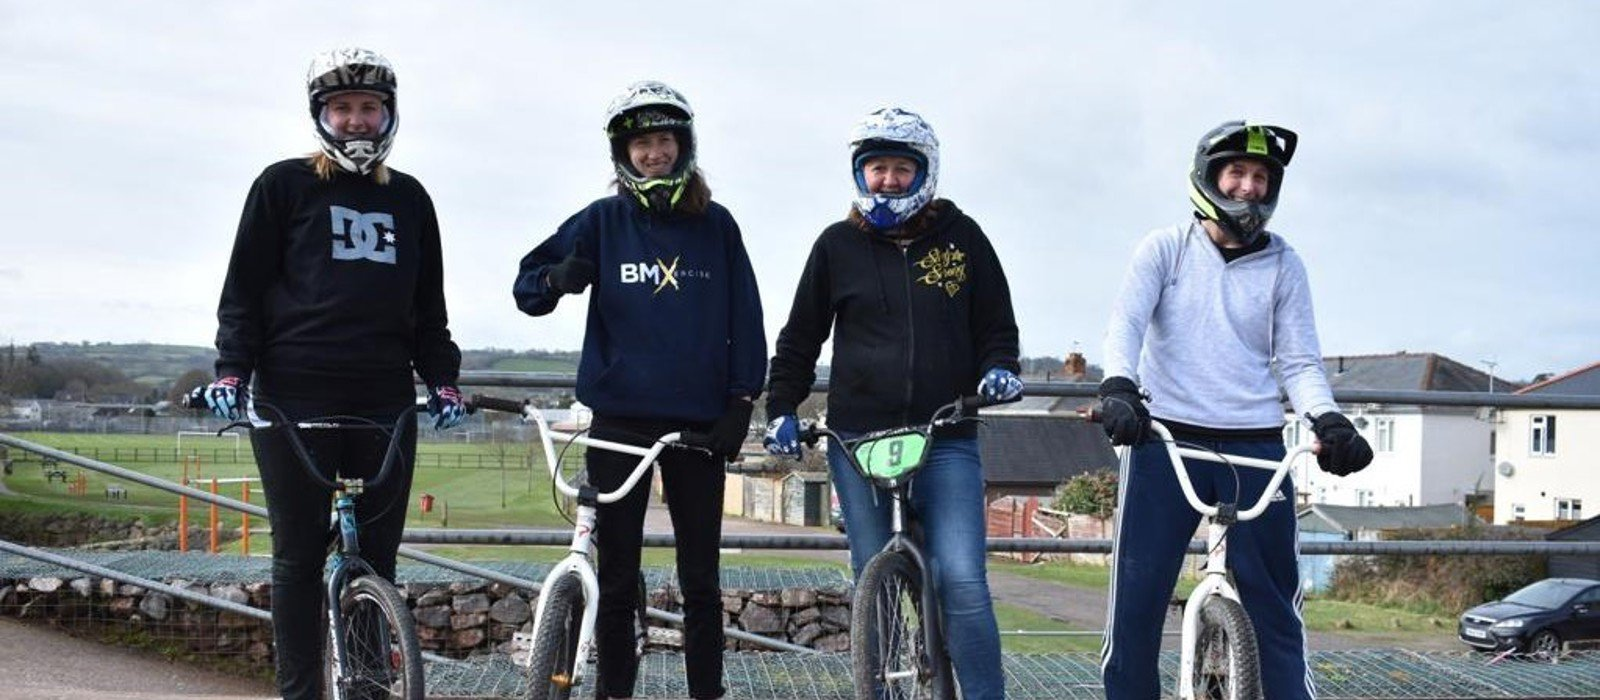 BMXERCISE LAUNCHES IN TIVERTON